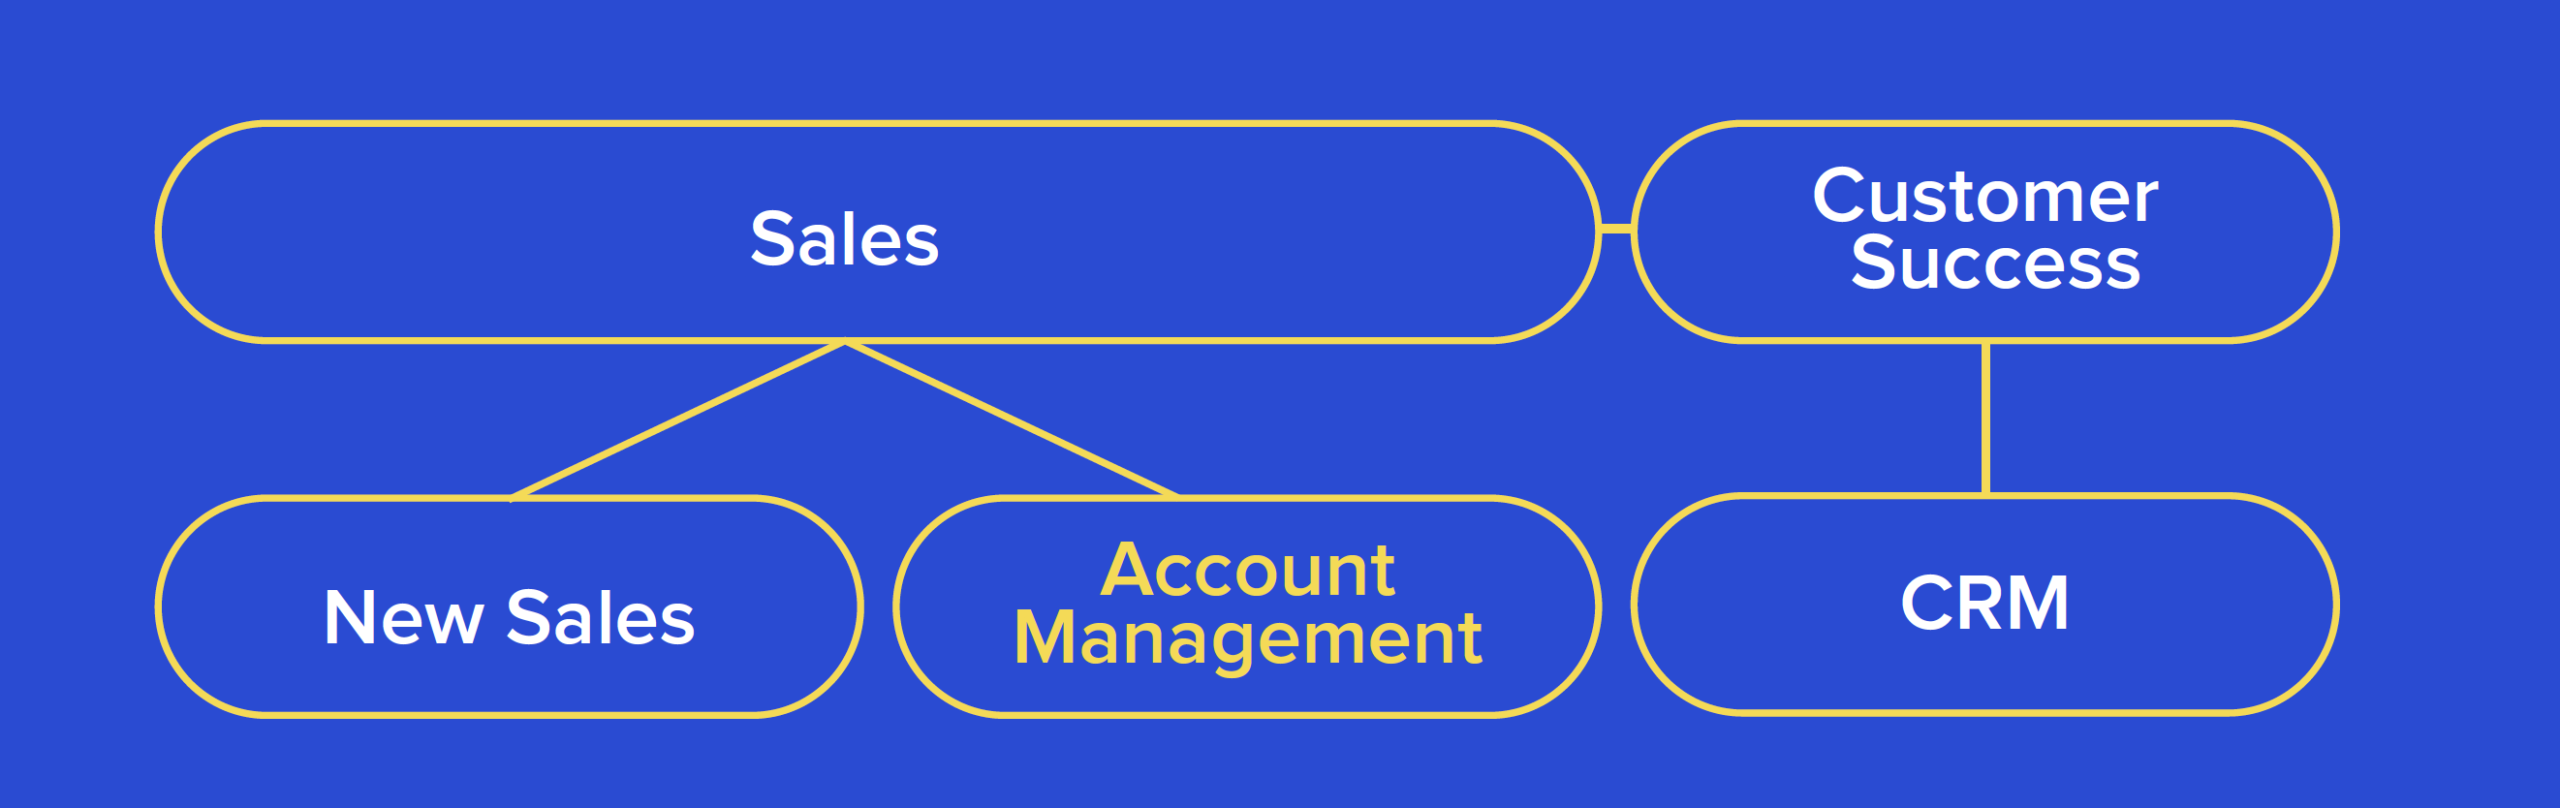 Org Structure with Account Management under Sales